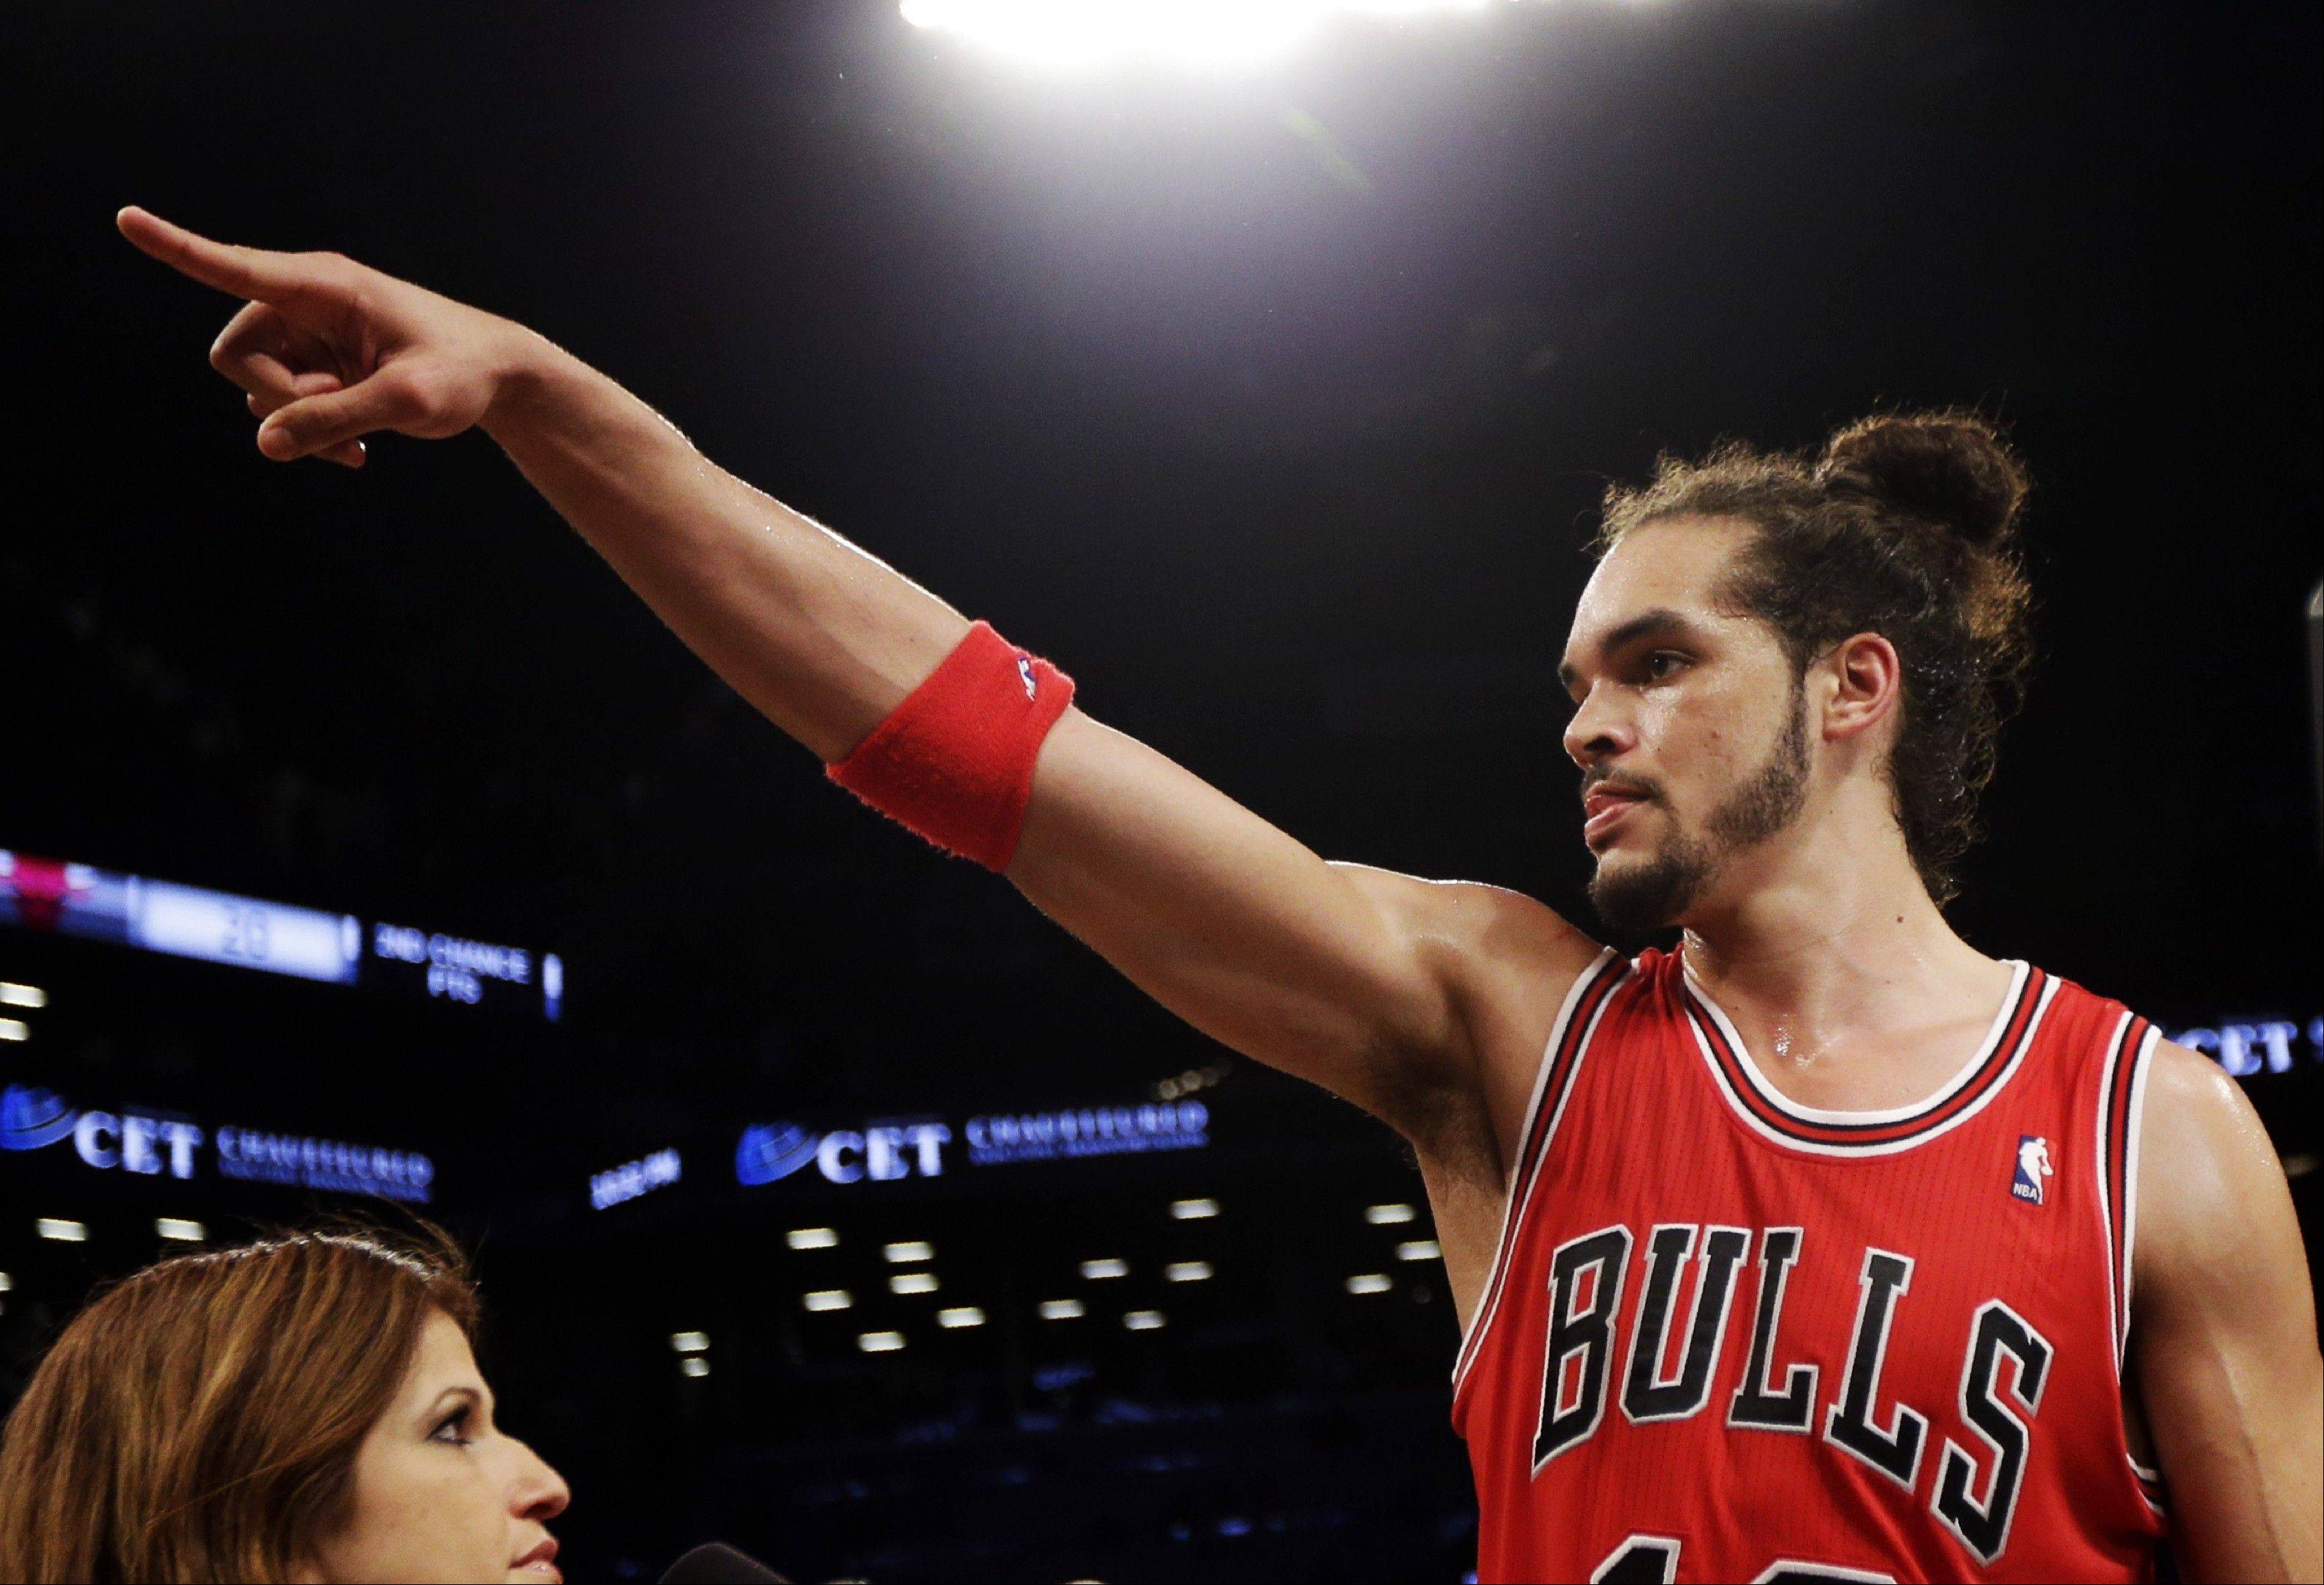 Bulls center Joakim Noah has been nothing short of an inspiration during the team's playoff run so far.